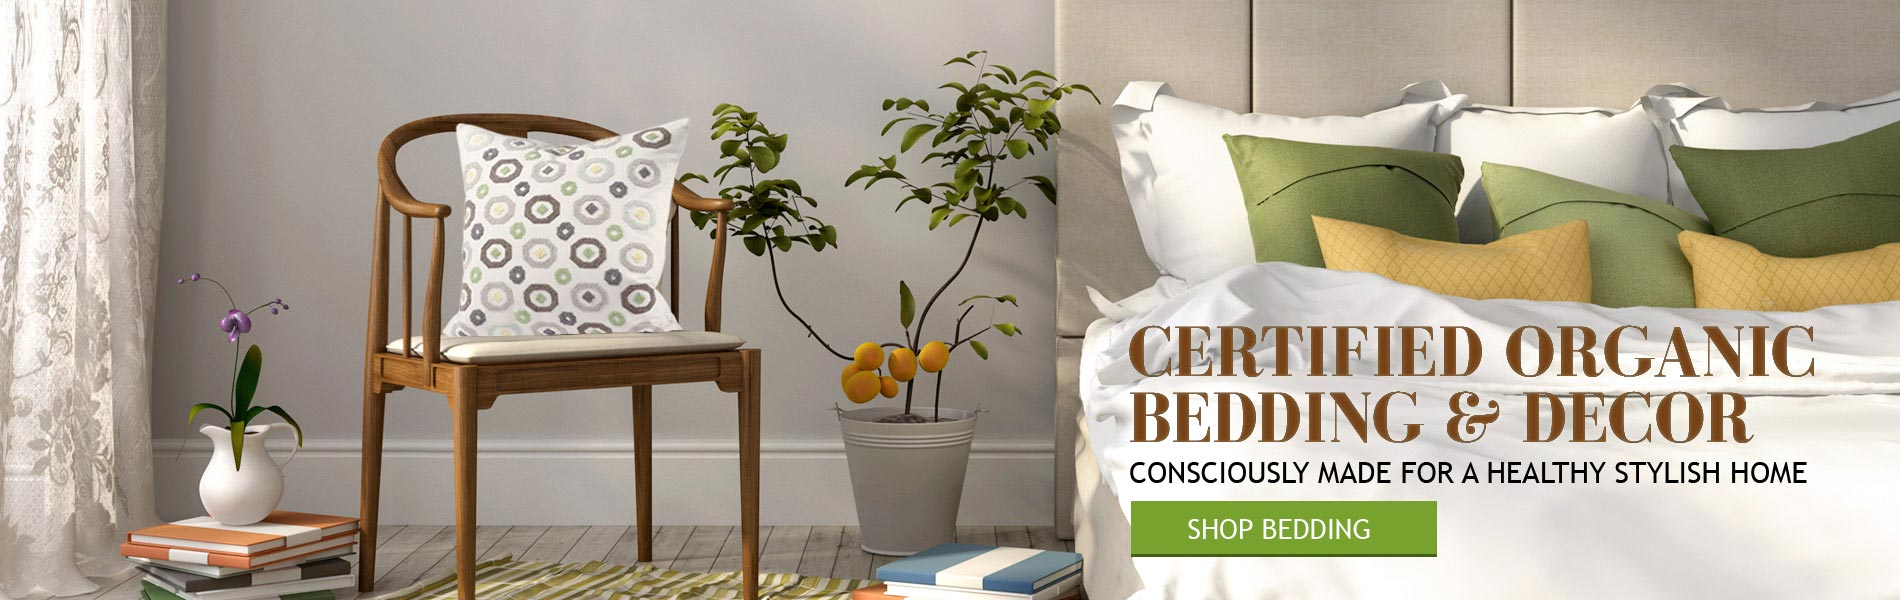 Home Certified Organic Bedding And Eco Friendly Decor Products